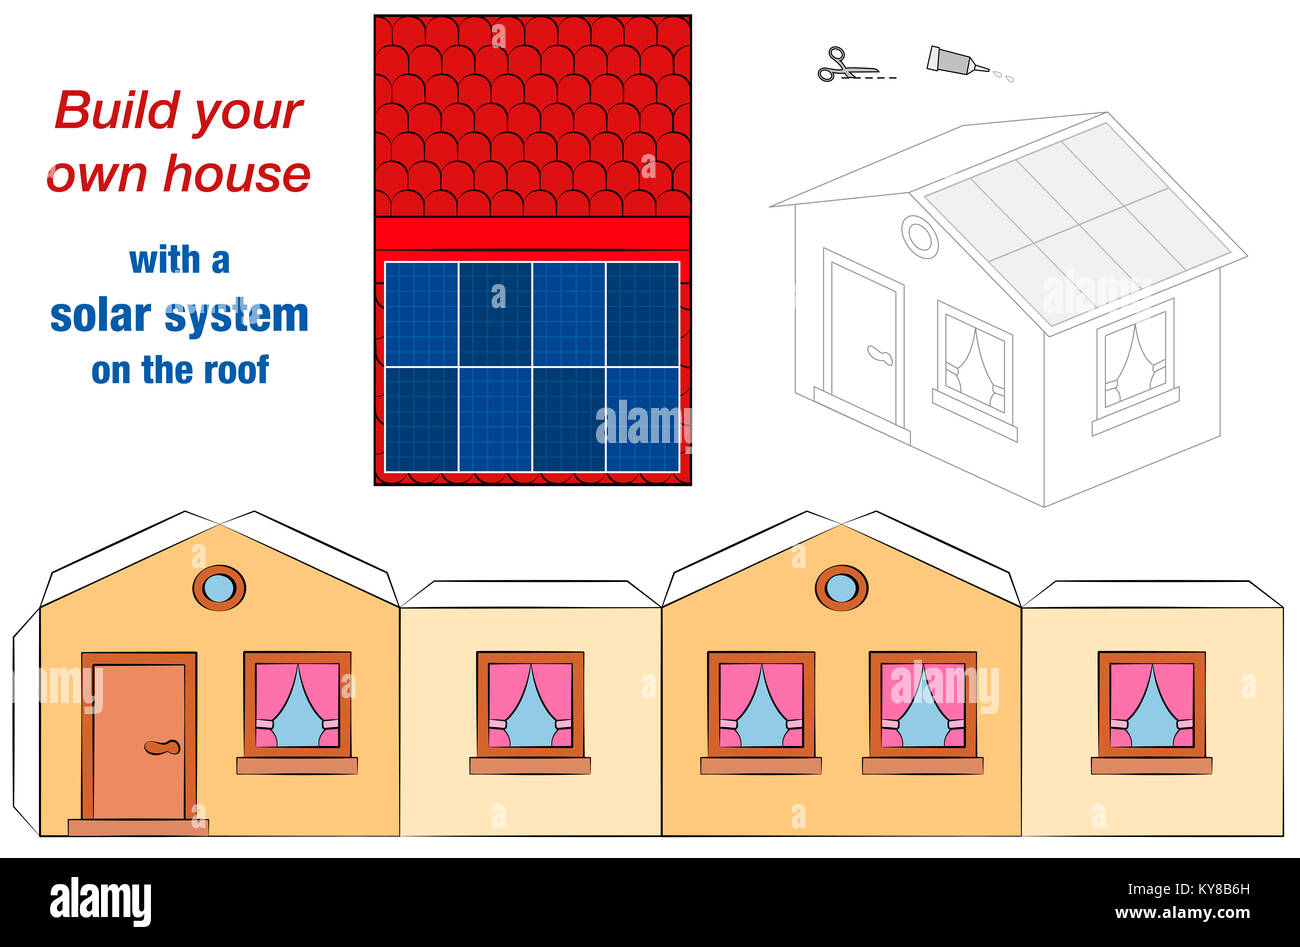 house template with solar panel collectors on the roof